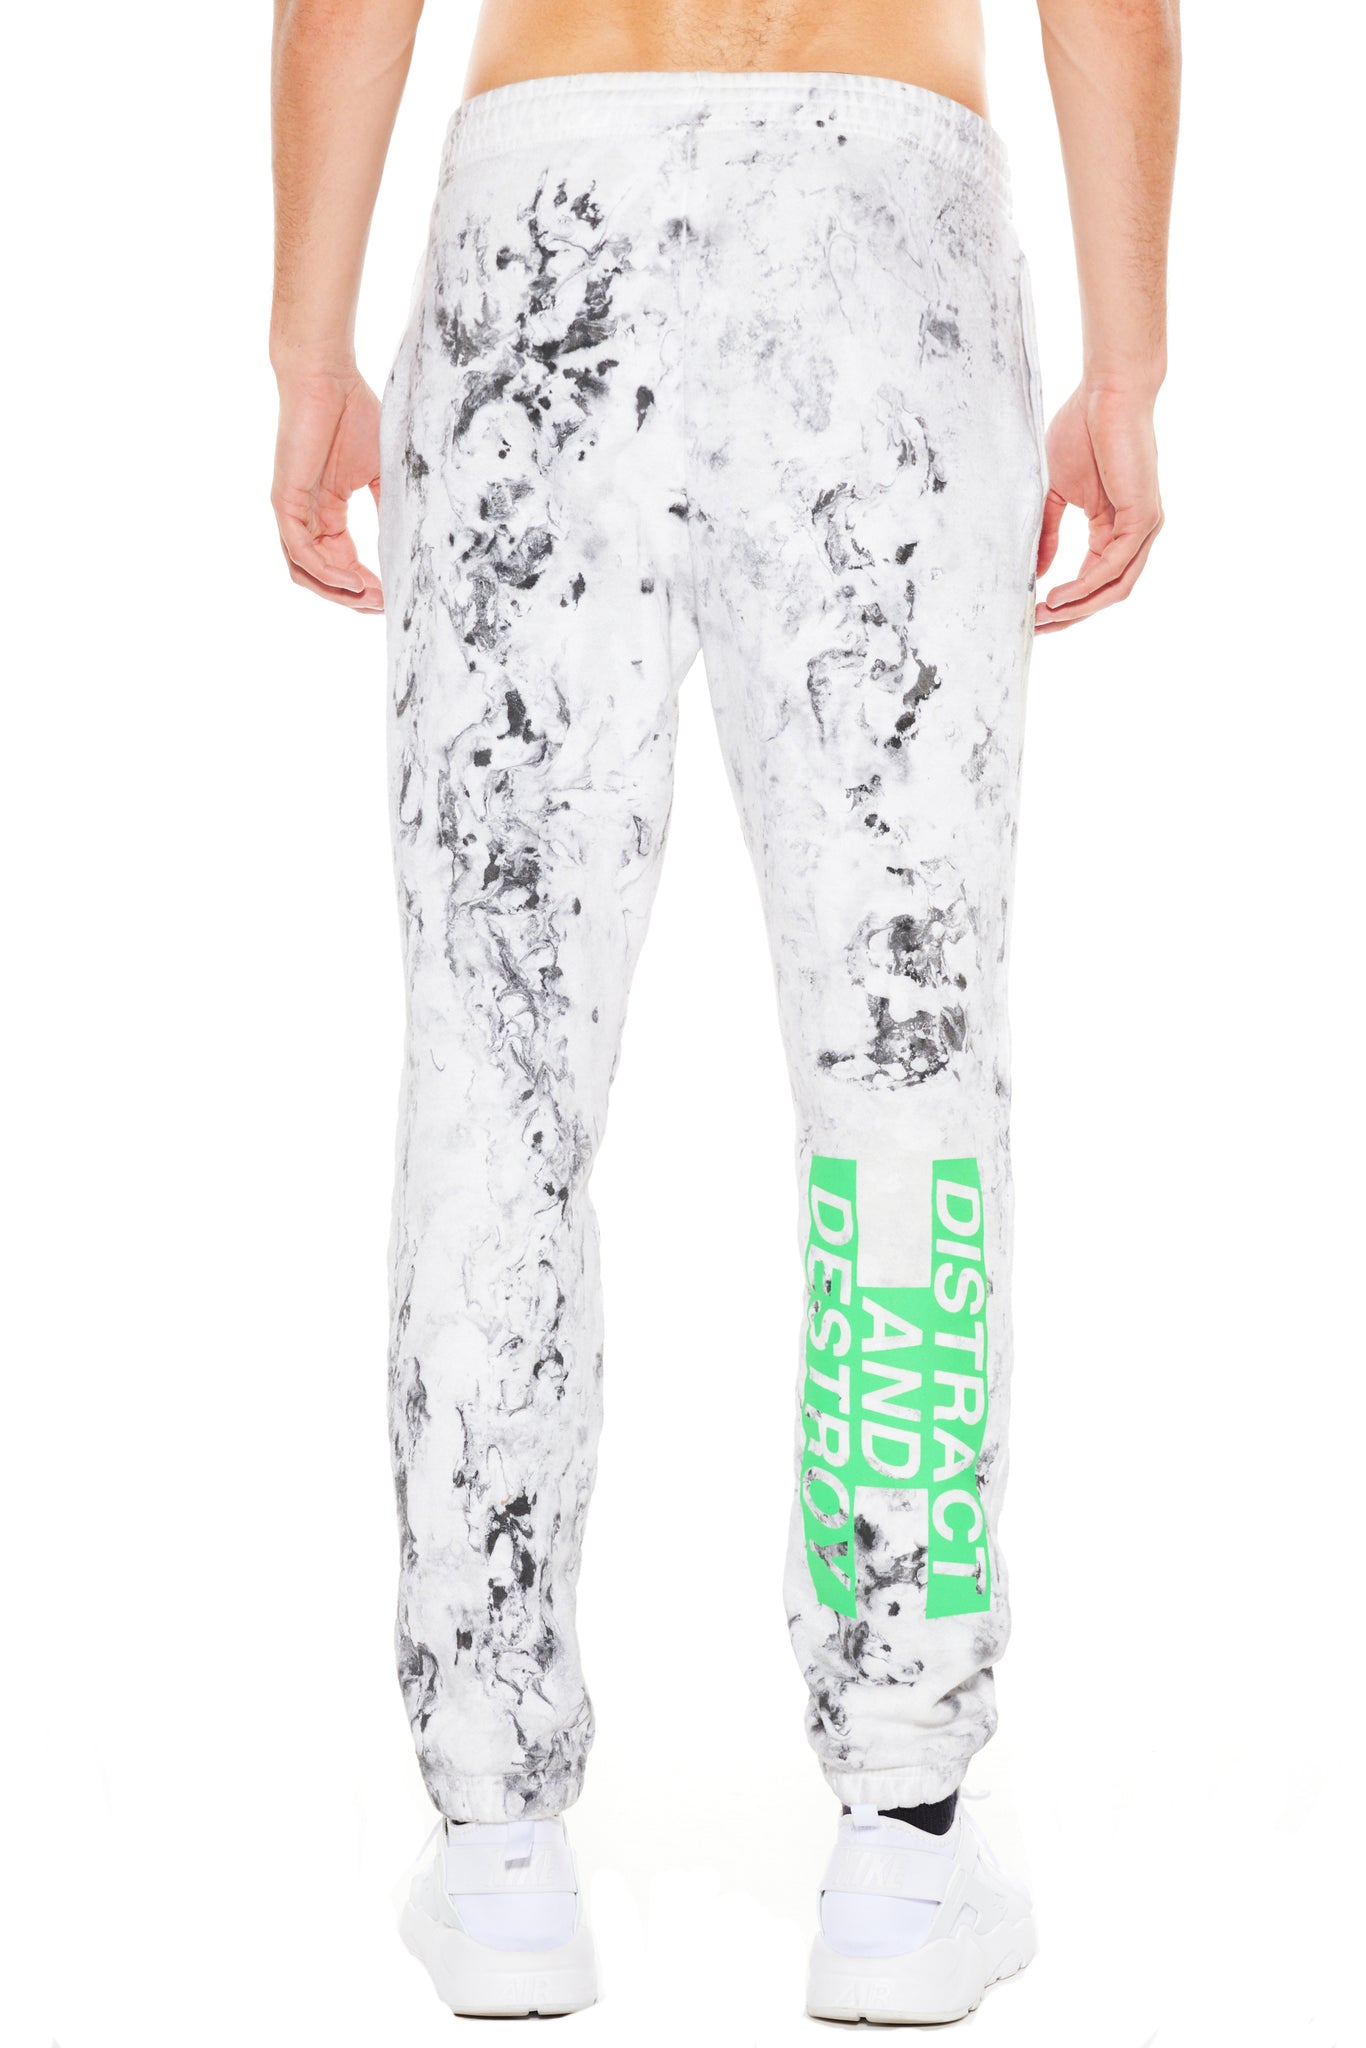 """LIBERTINE DEAD HEADS"" SWEATPANTS - Men's Bottoms - Libertine"